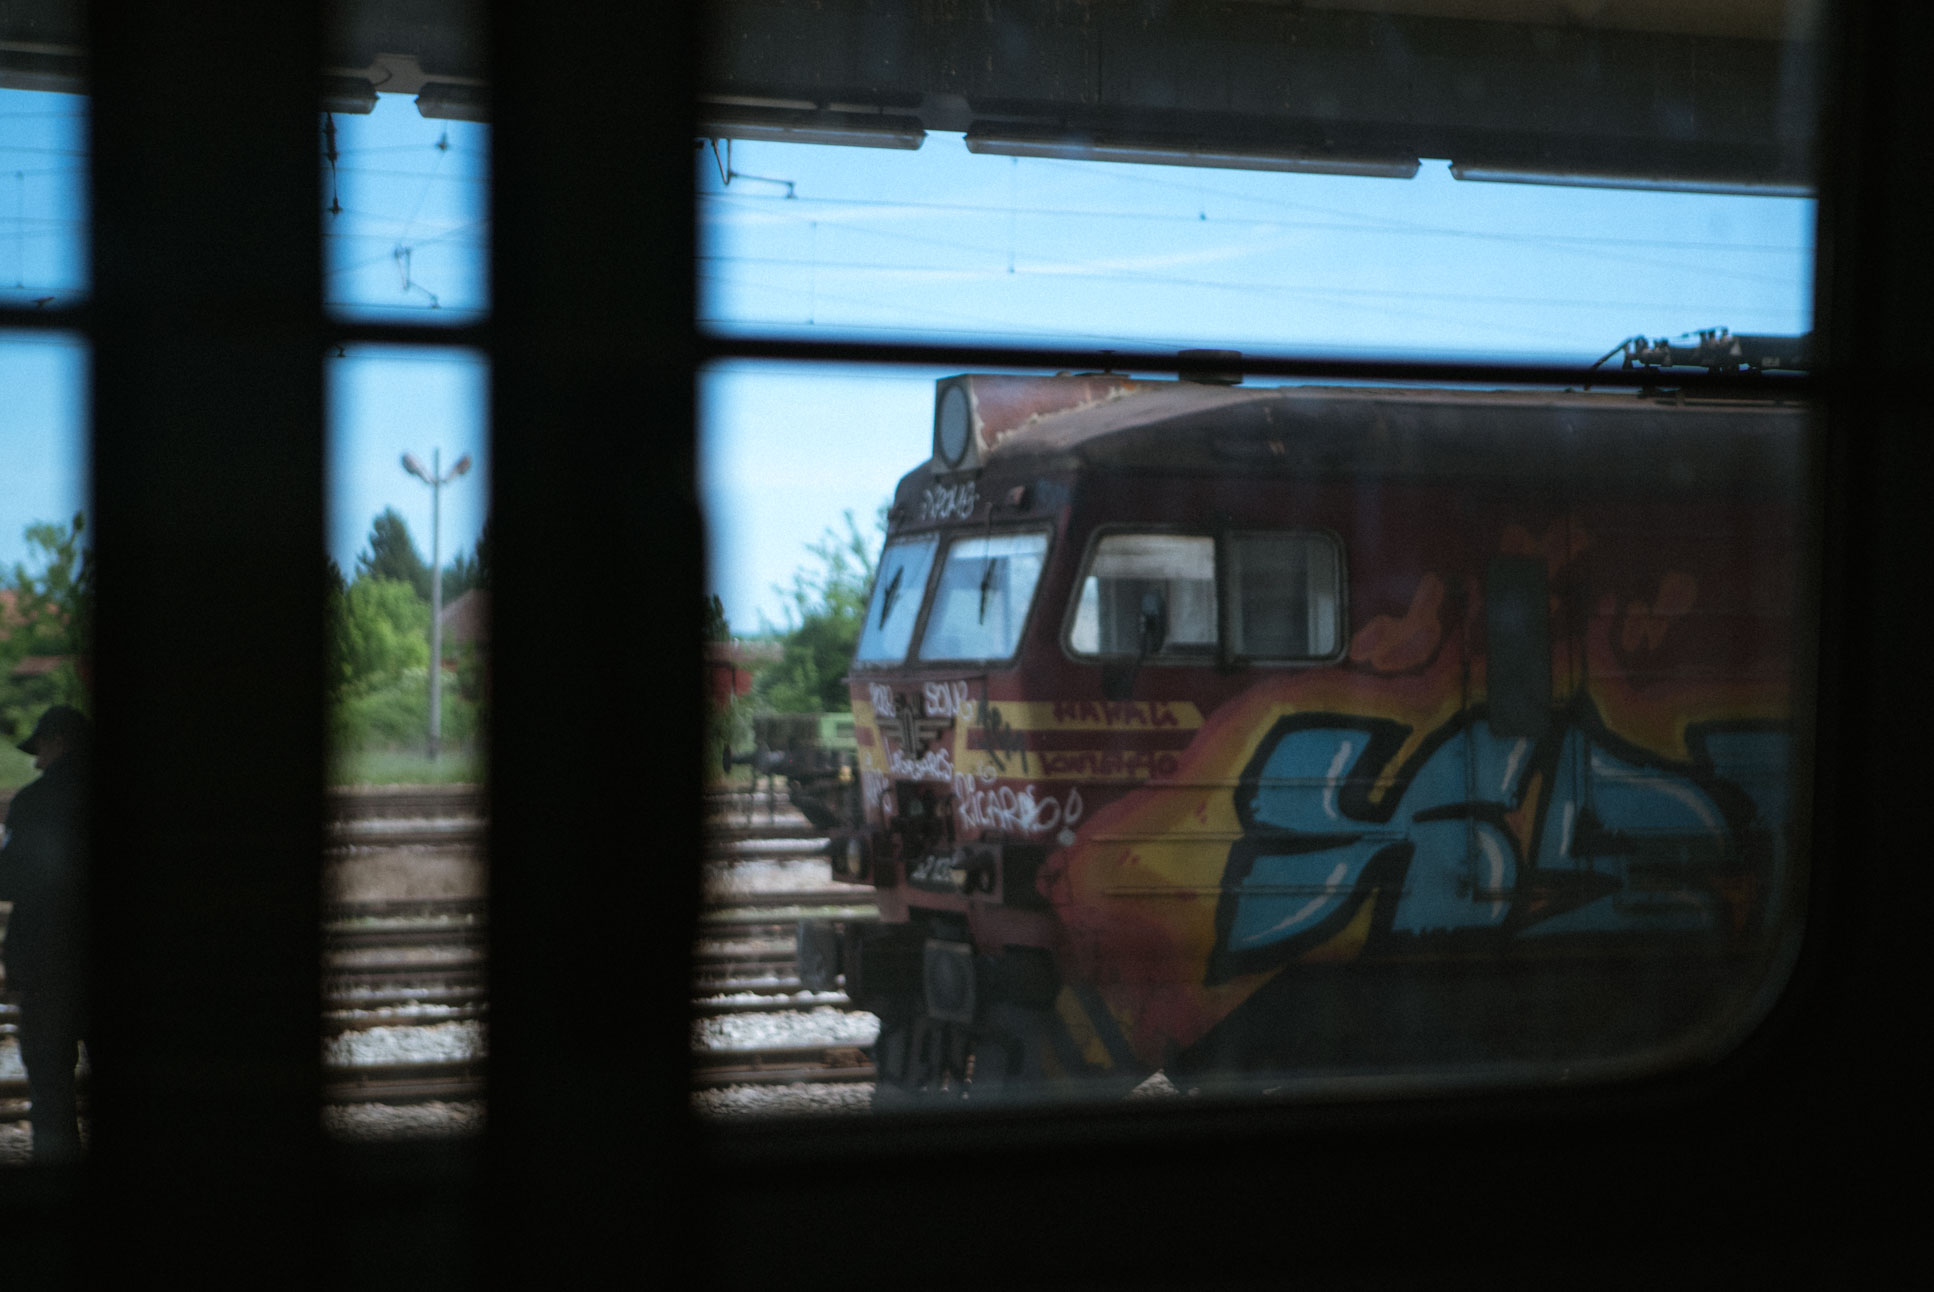 all across the Balkans I saw some beautiful graffiti on trains